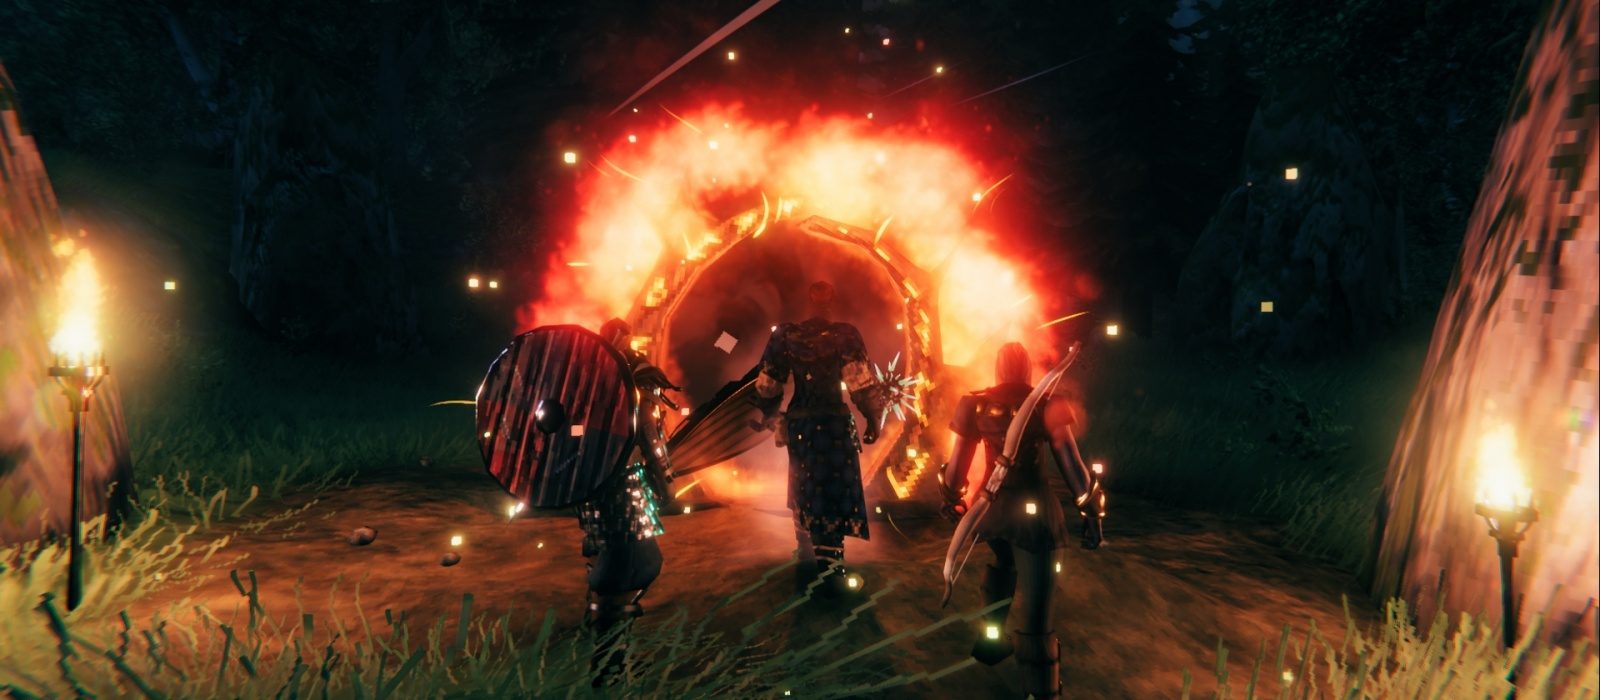 How to Create a Portal in Valheim - Where to Find Greydwarf Eyes, Surtlig Kernels and Quality Wood